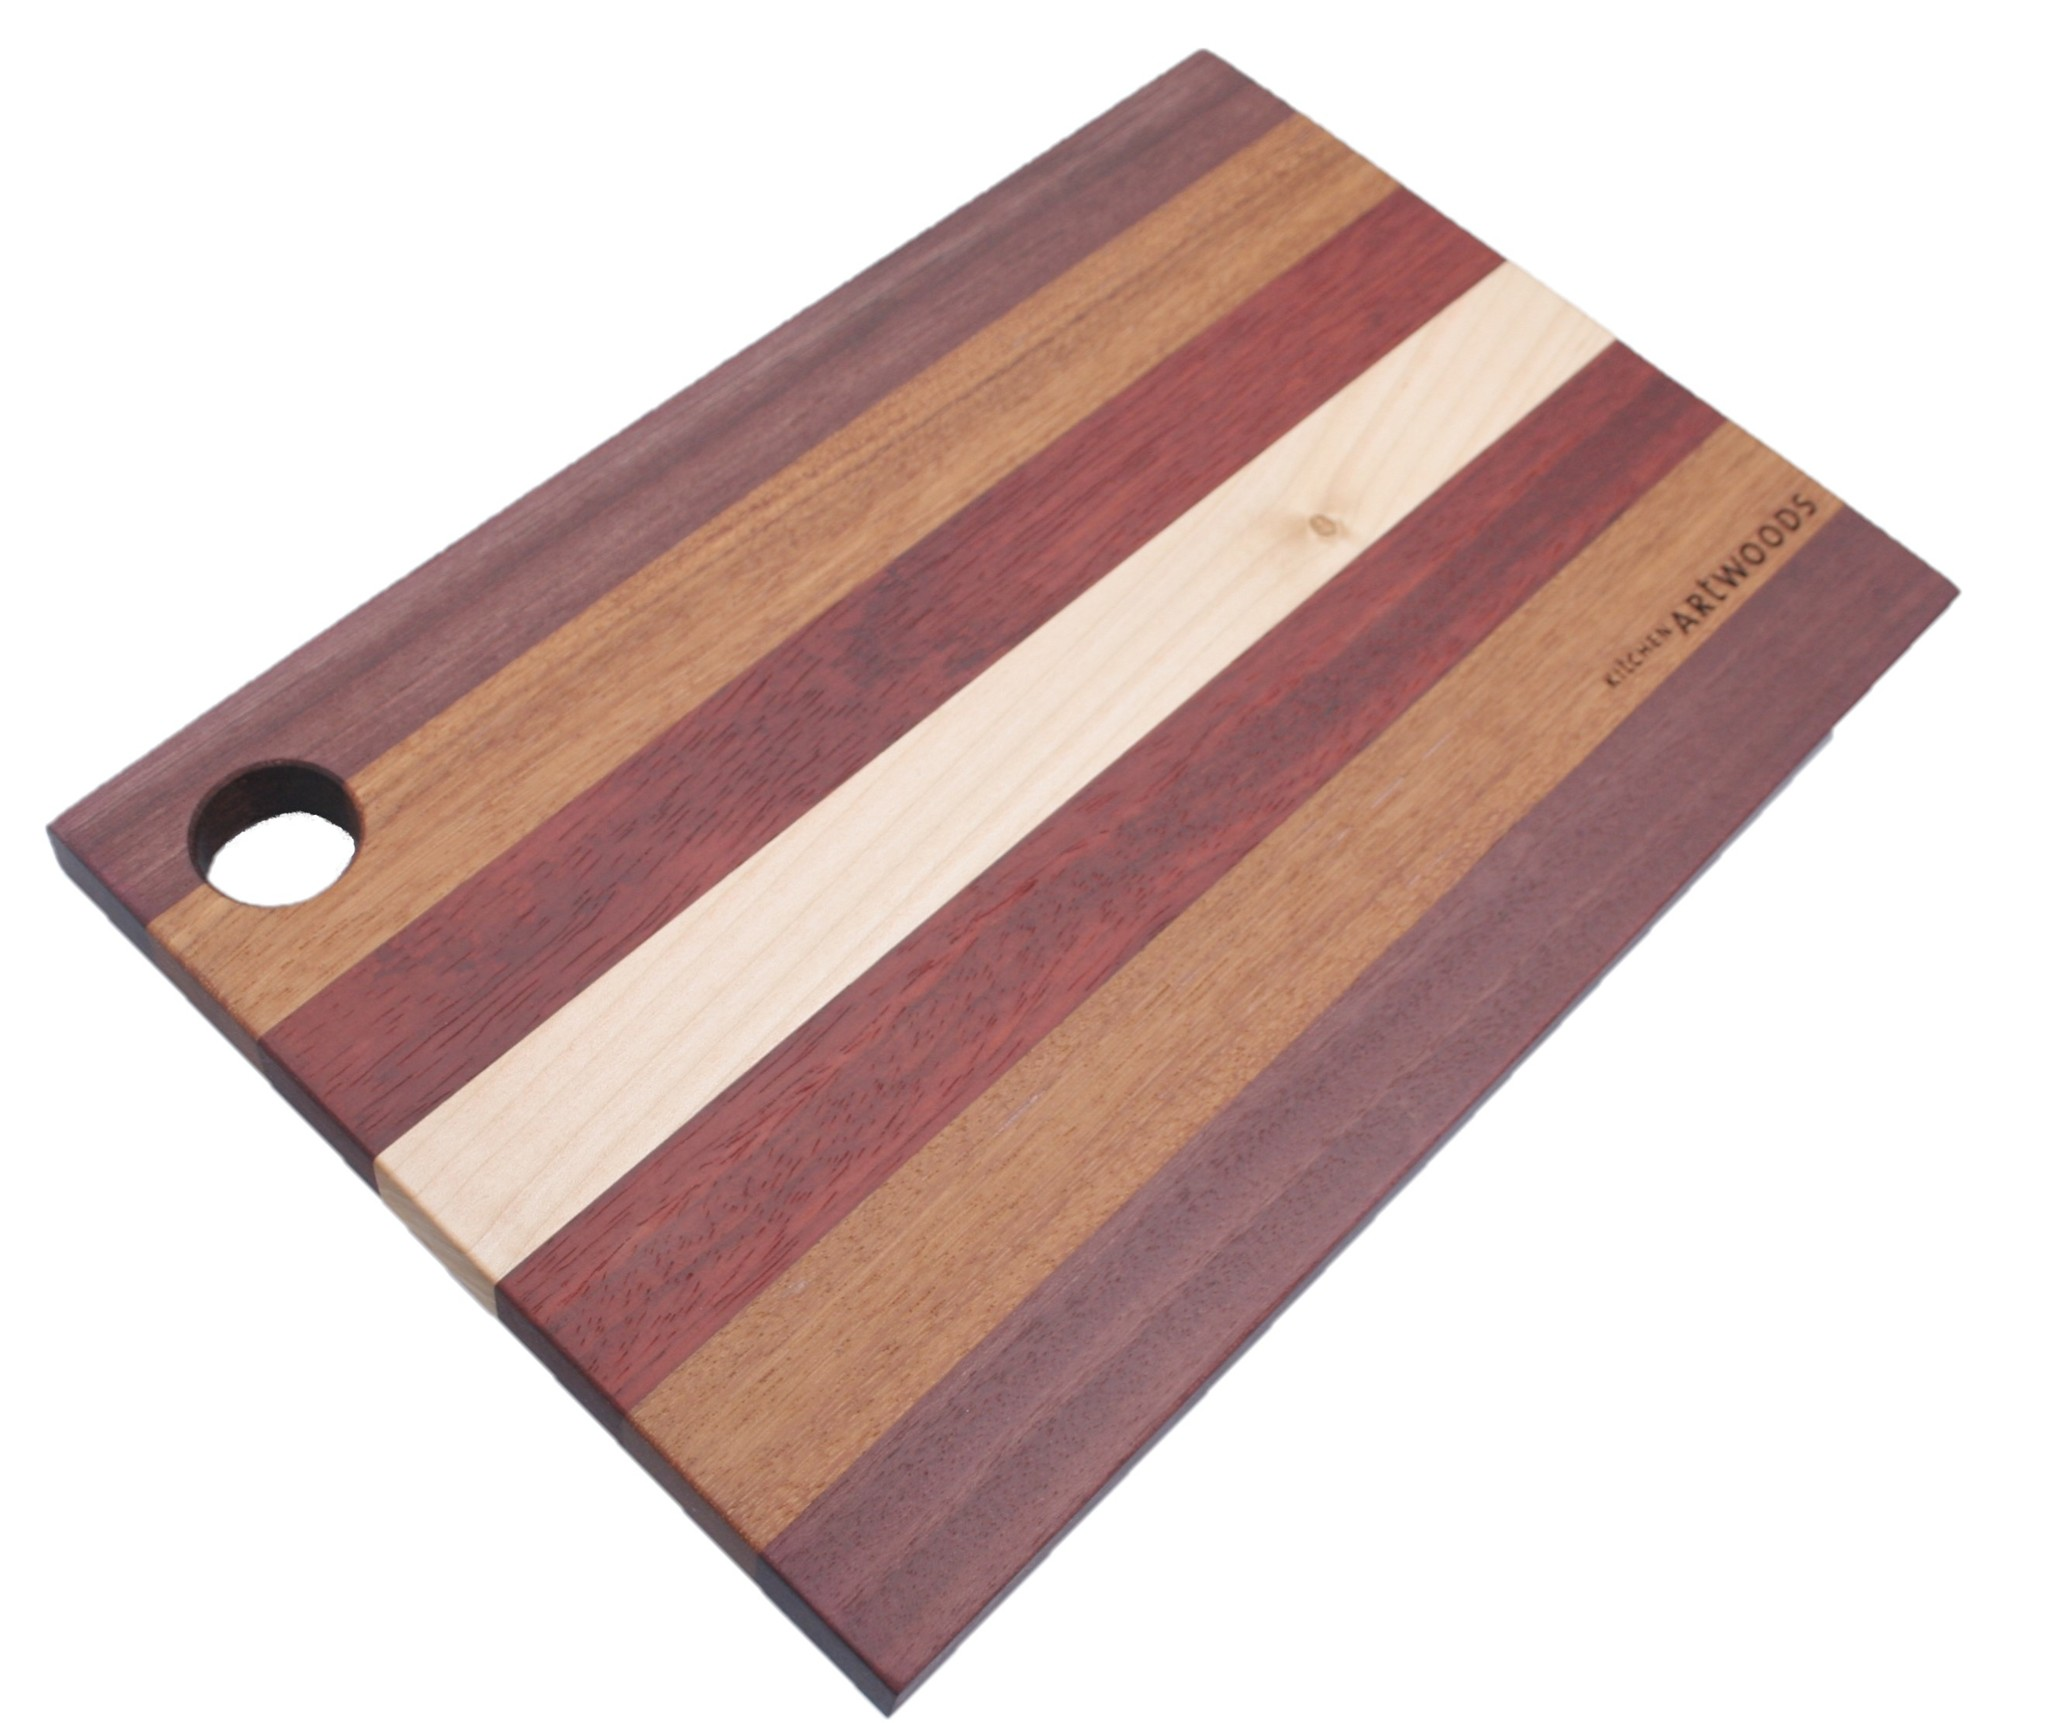 Colourful cheese Board, made of hard maple, paduk, afzelia and purpleheart, available in three sizes